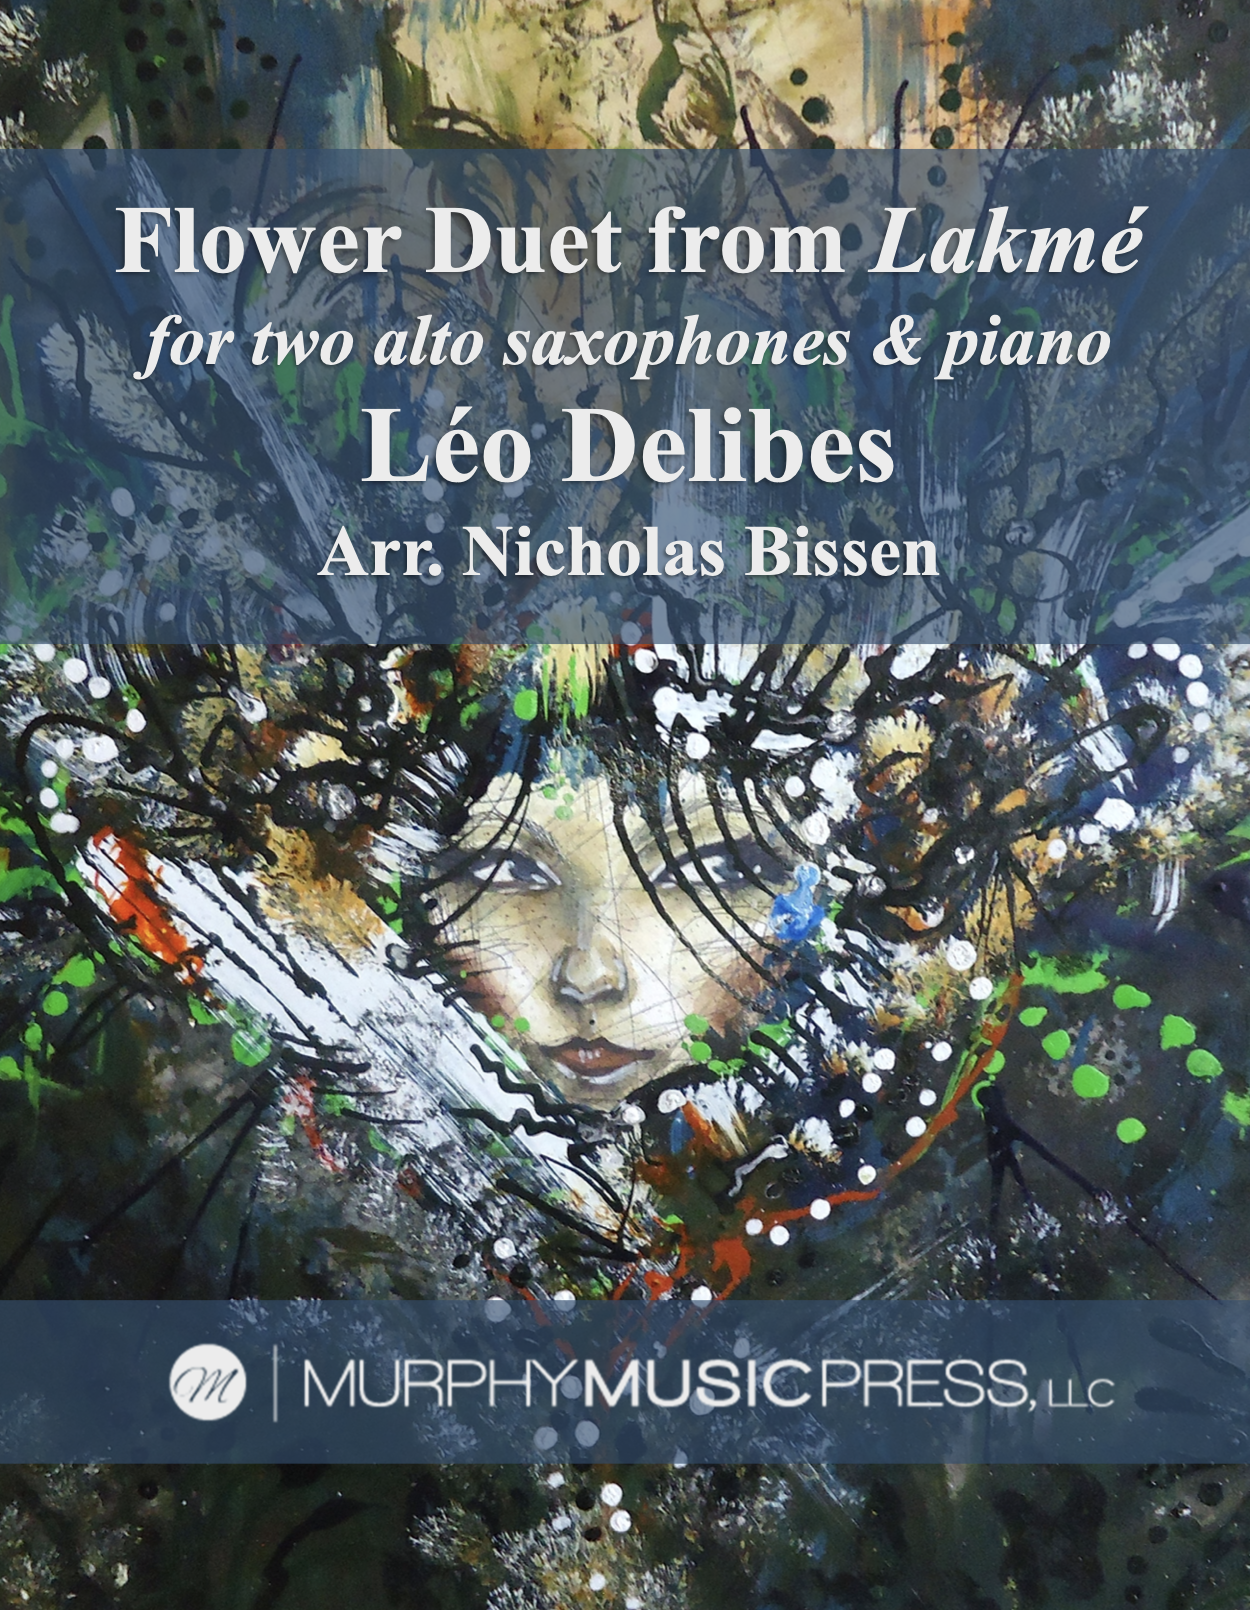 The Flower Duet (Alto Version) by arr. Nicholas Bissen